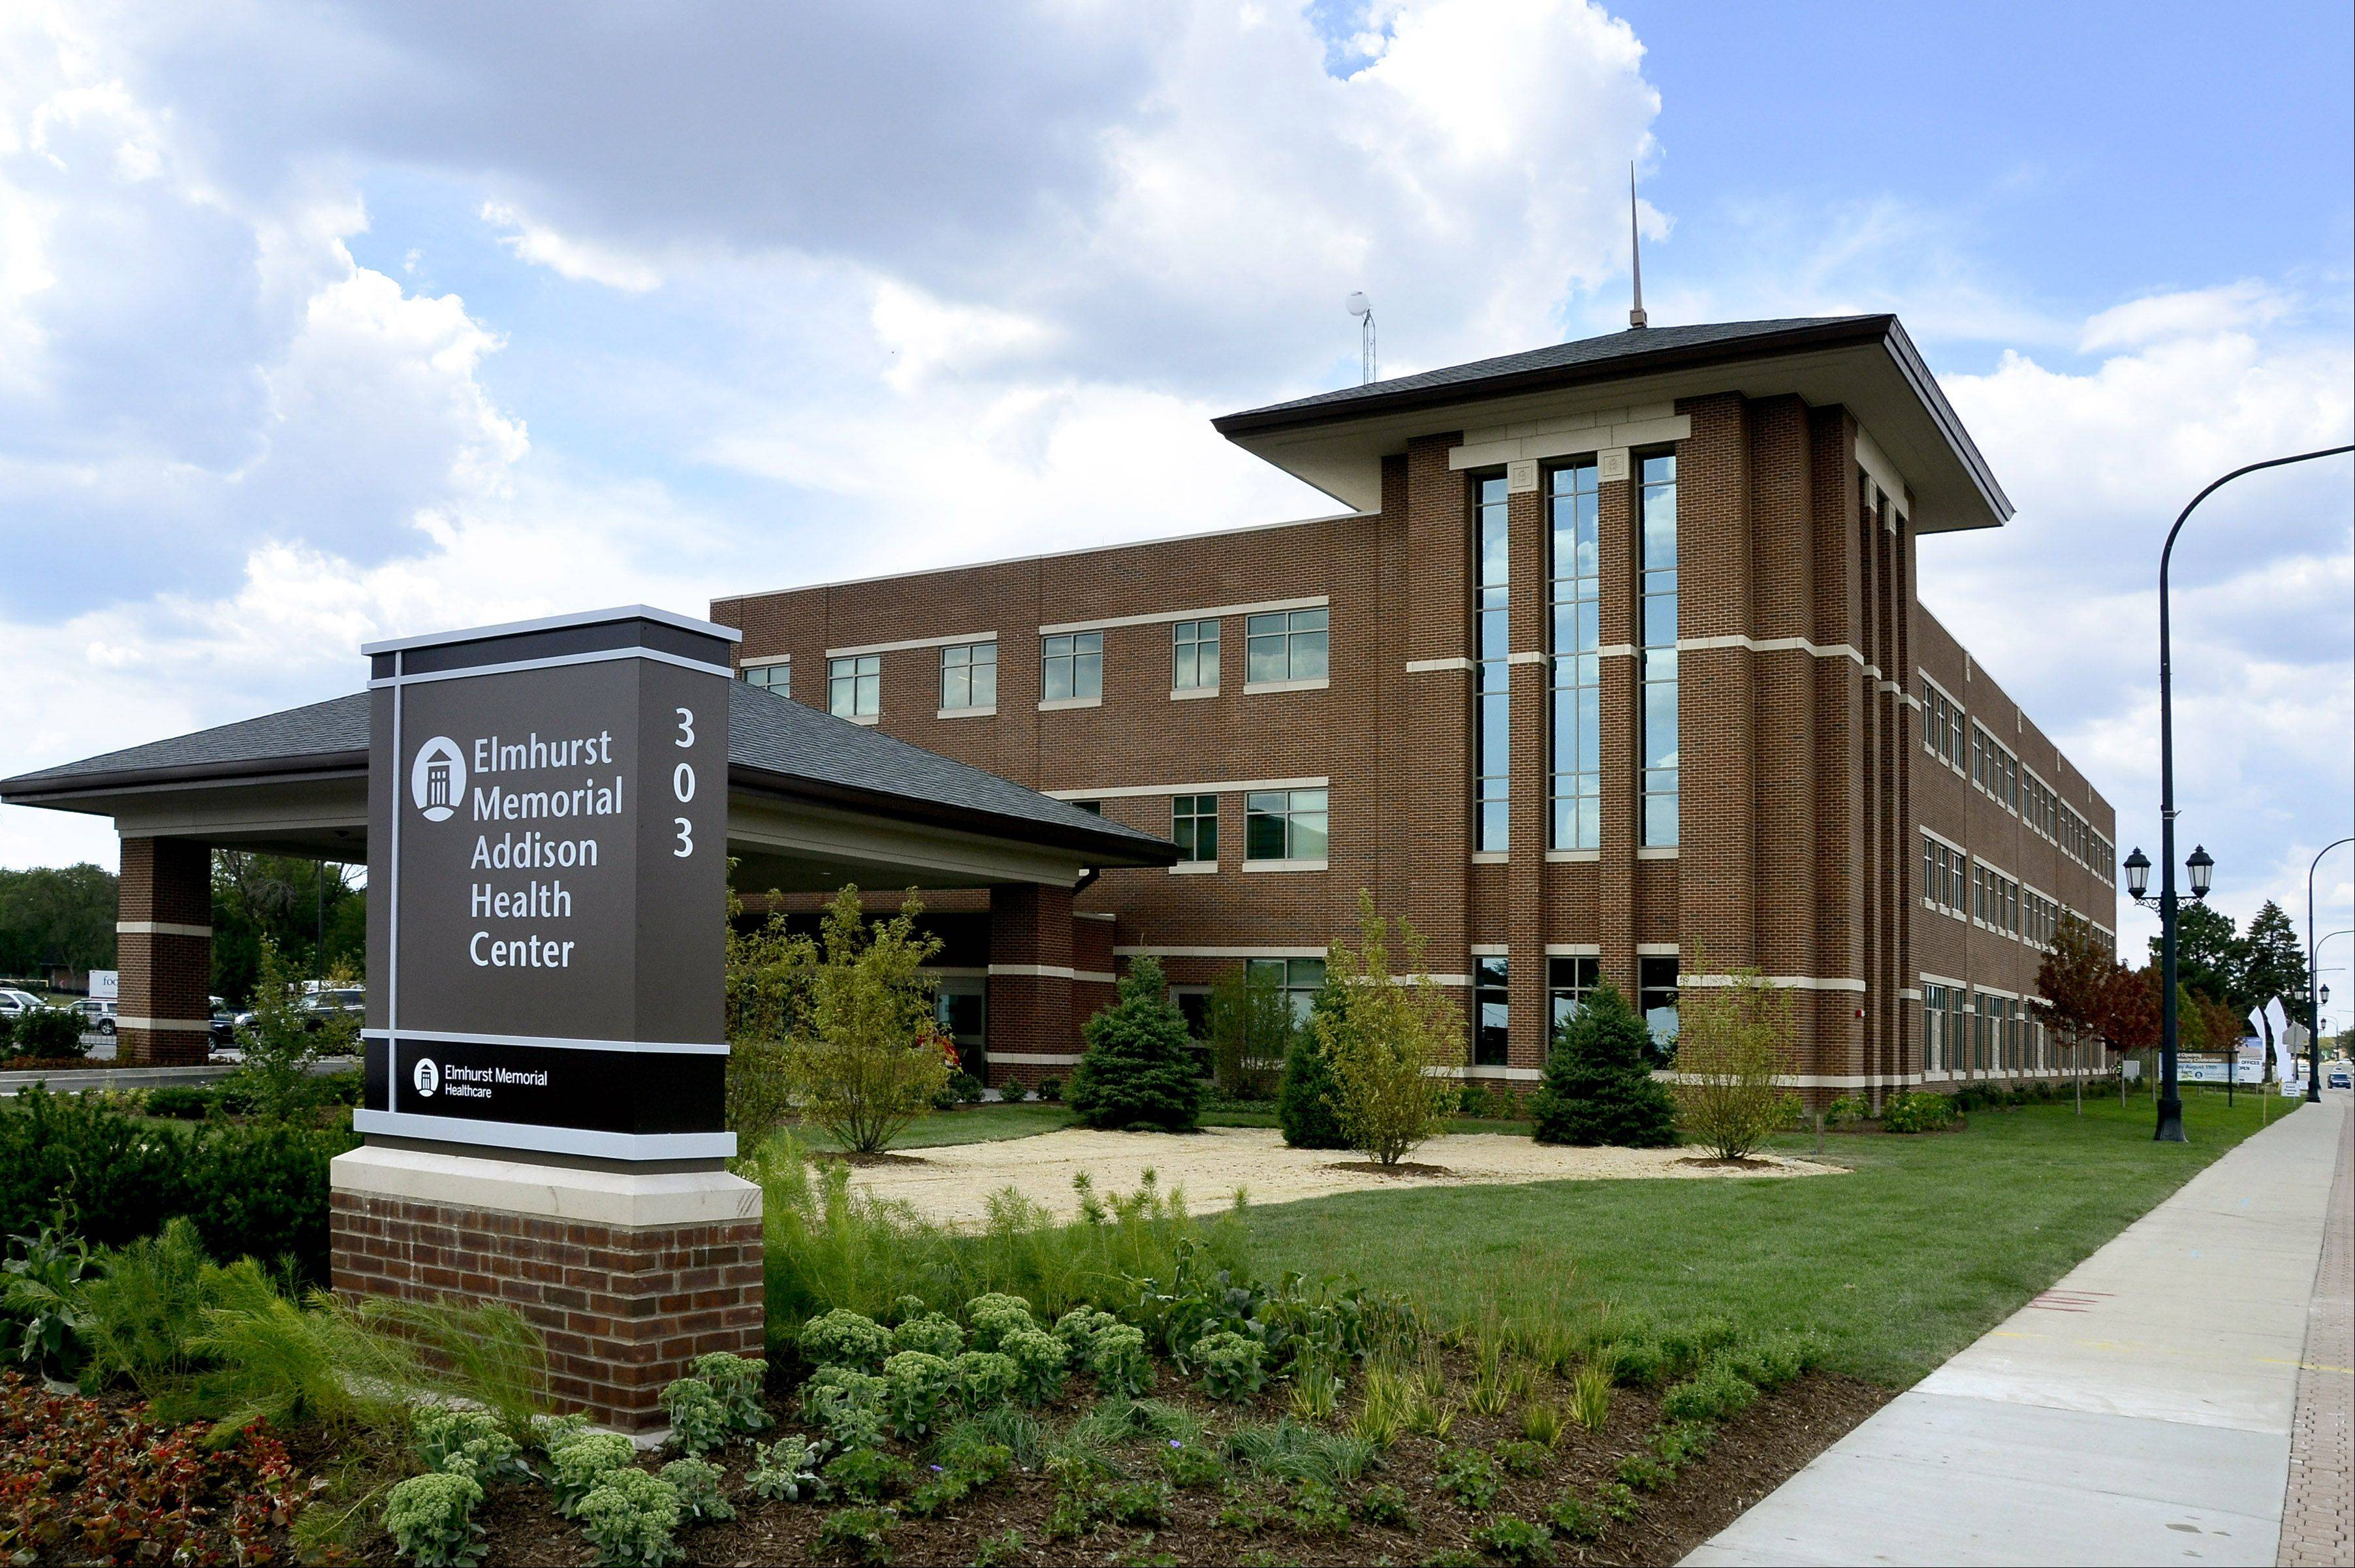 Elmhurst Memorial Hospital held the opening of their new Addison Health Center Sunday afternoon. The 55,000 square foot facility on Lake Street features, MRI, X-ray and other health procedures.